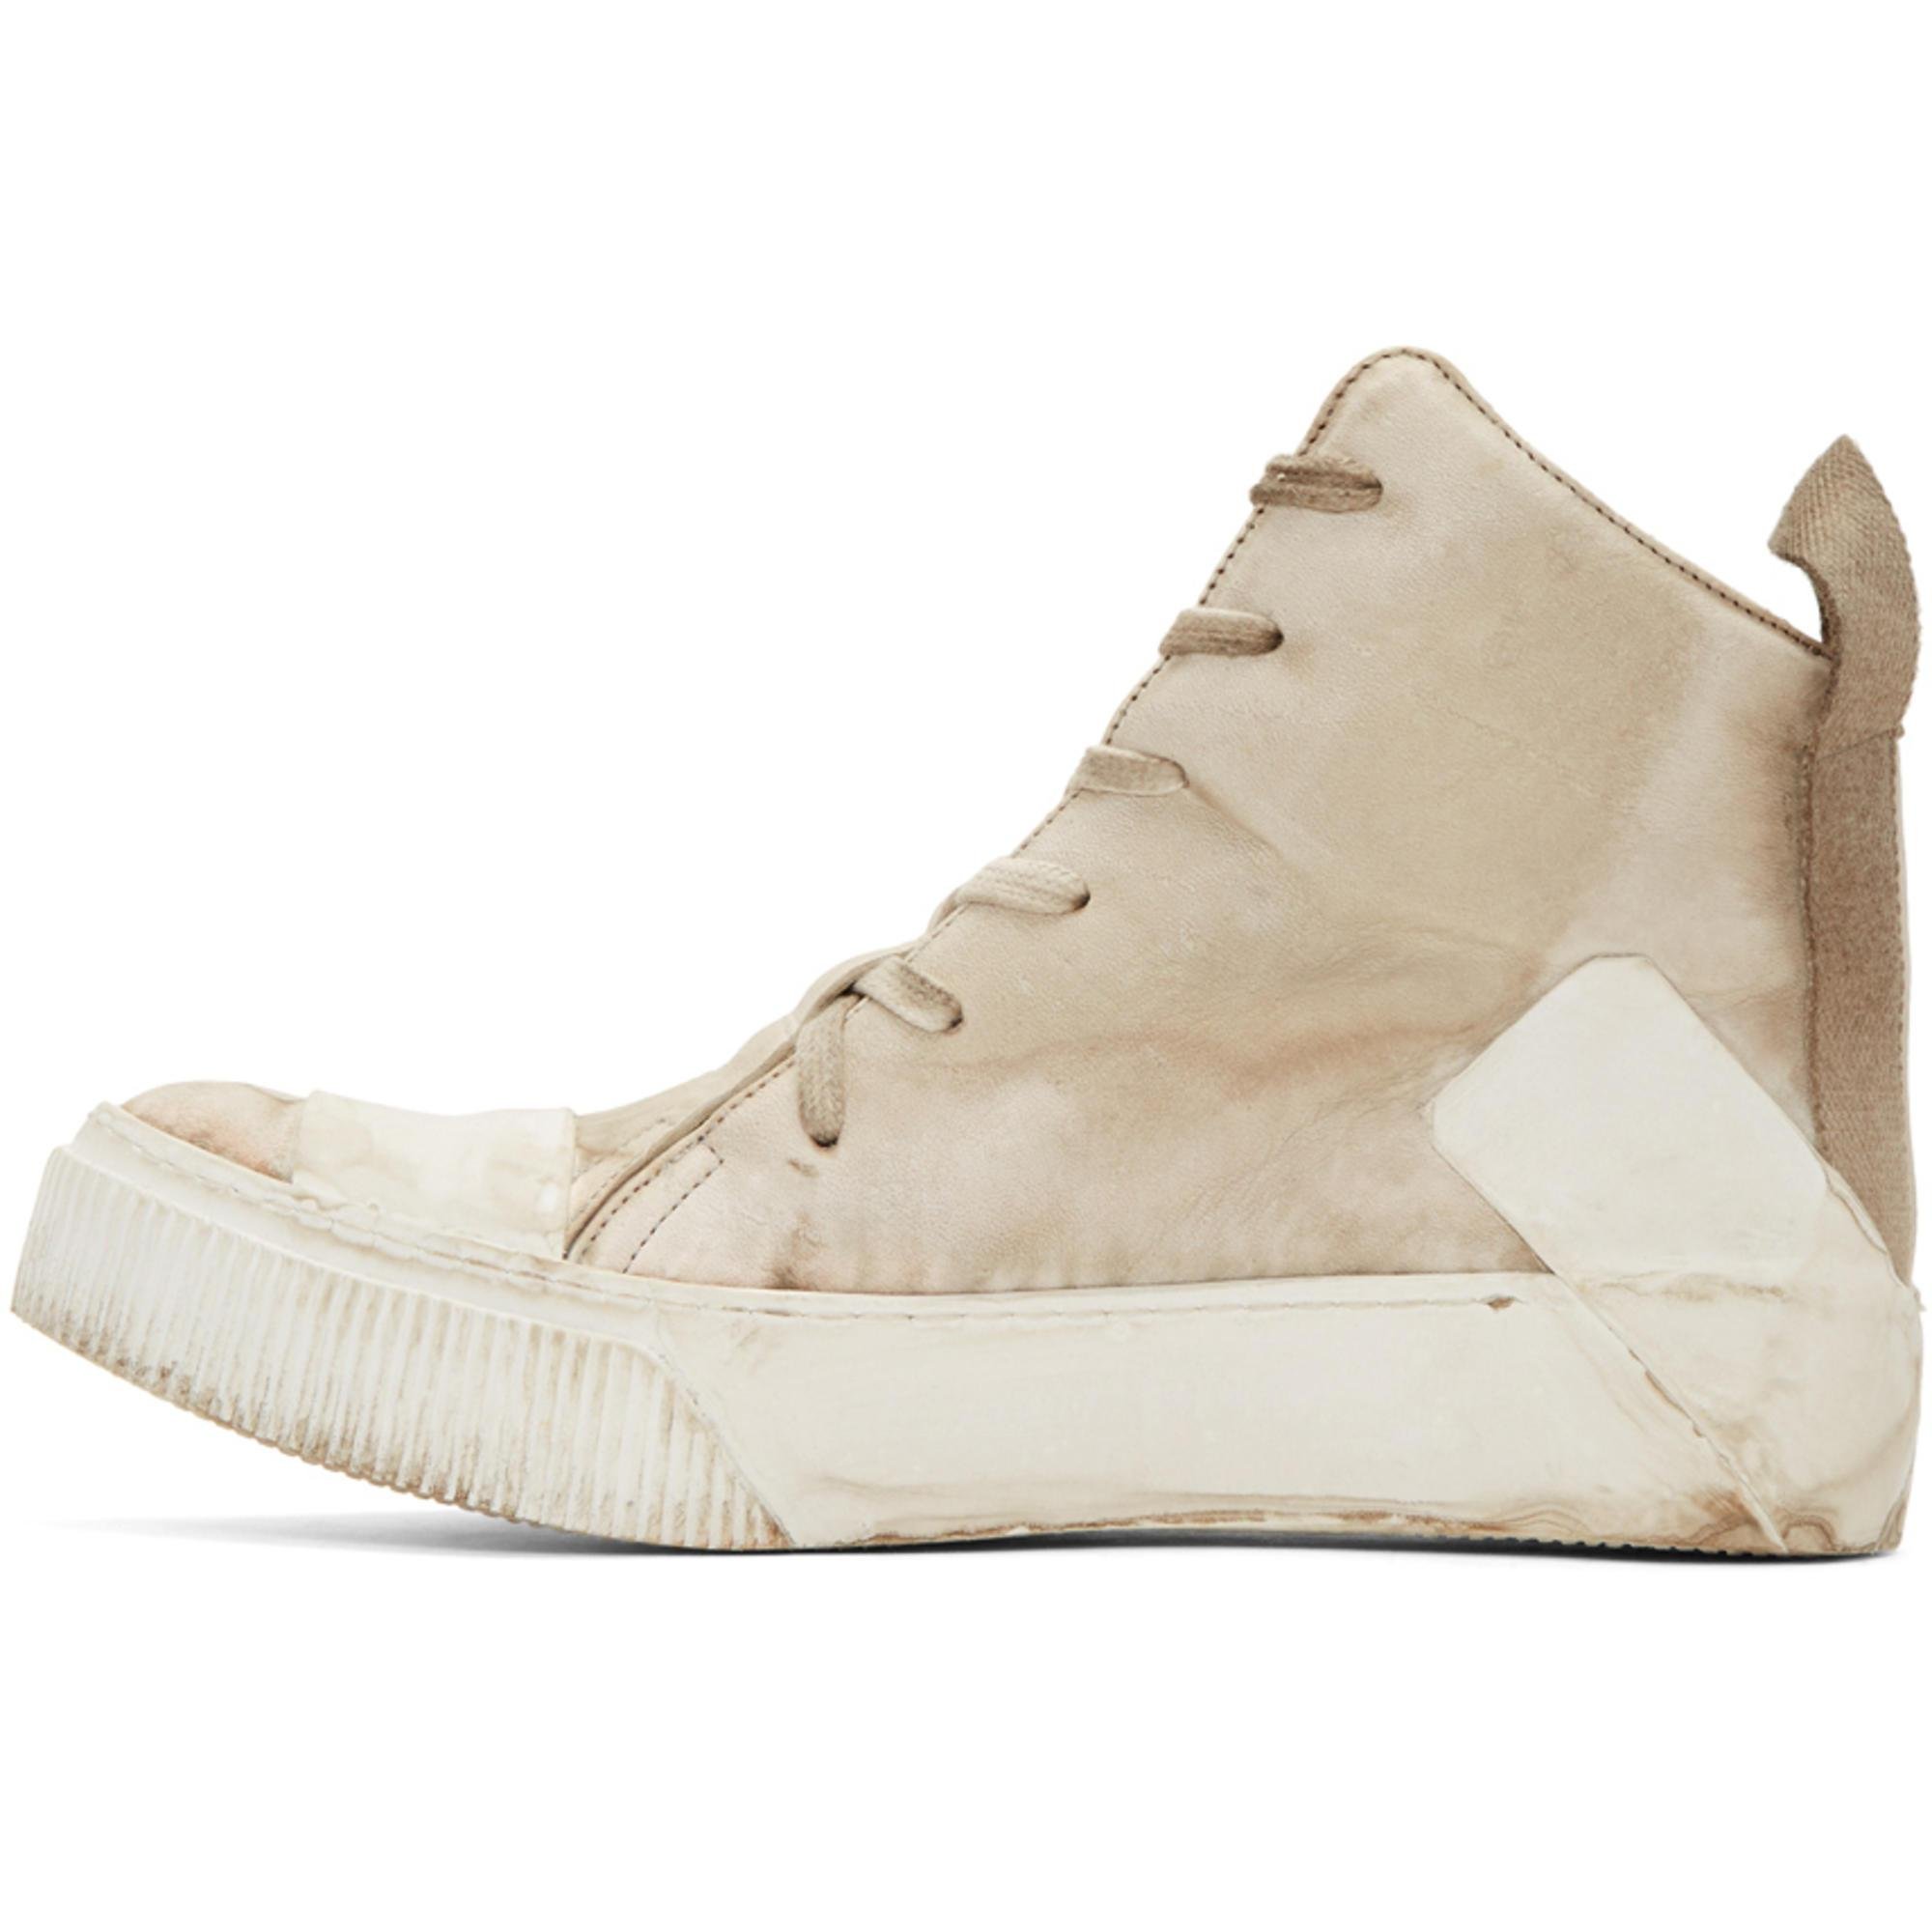 Hender Scheme Off-White Bamba 1 Sneakers